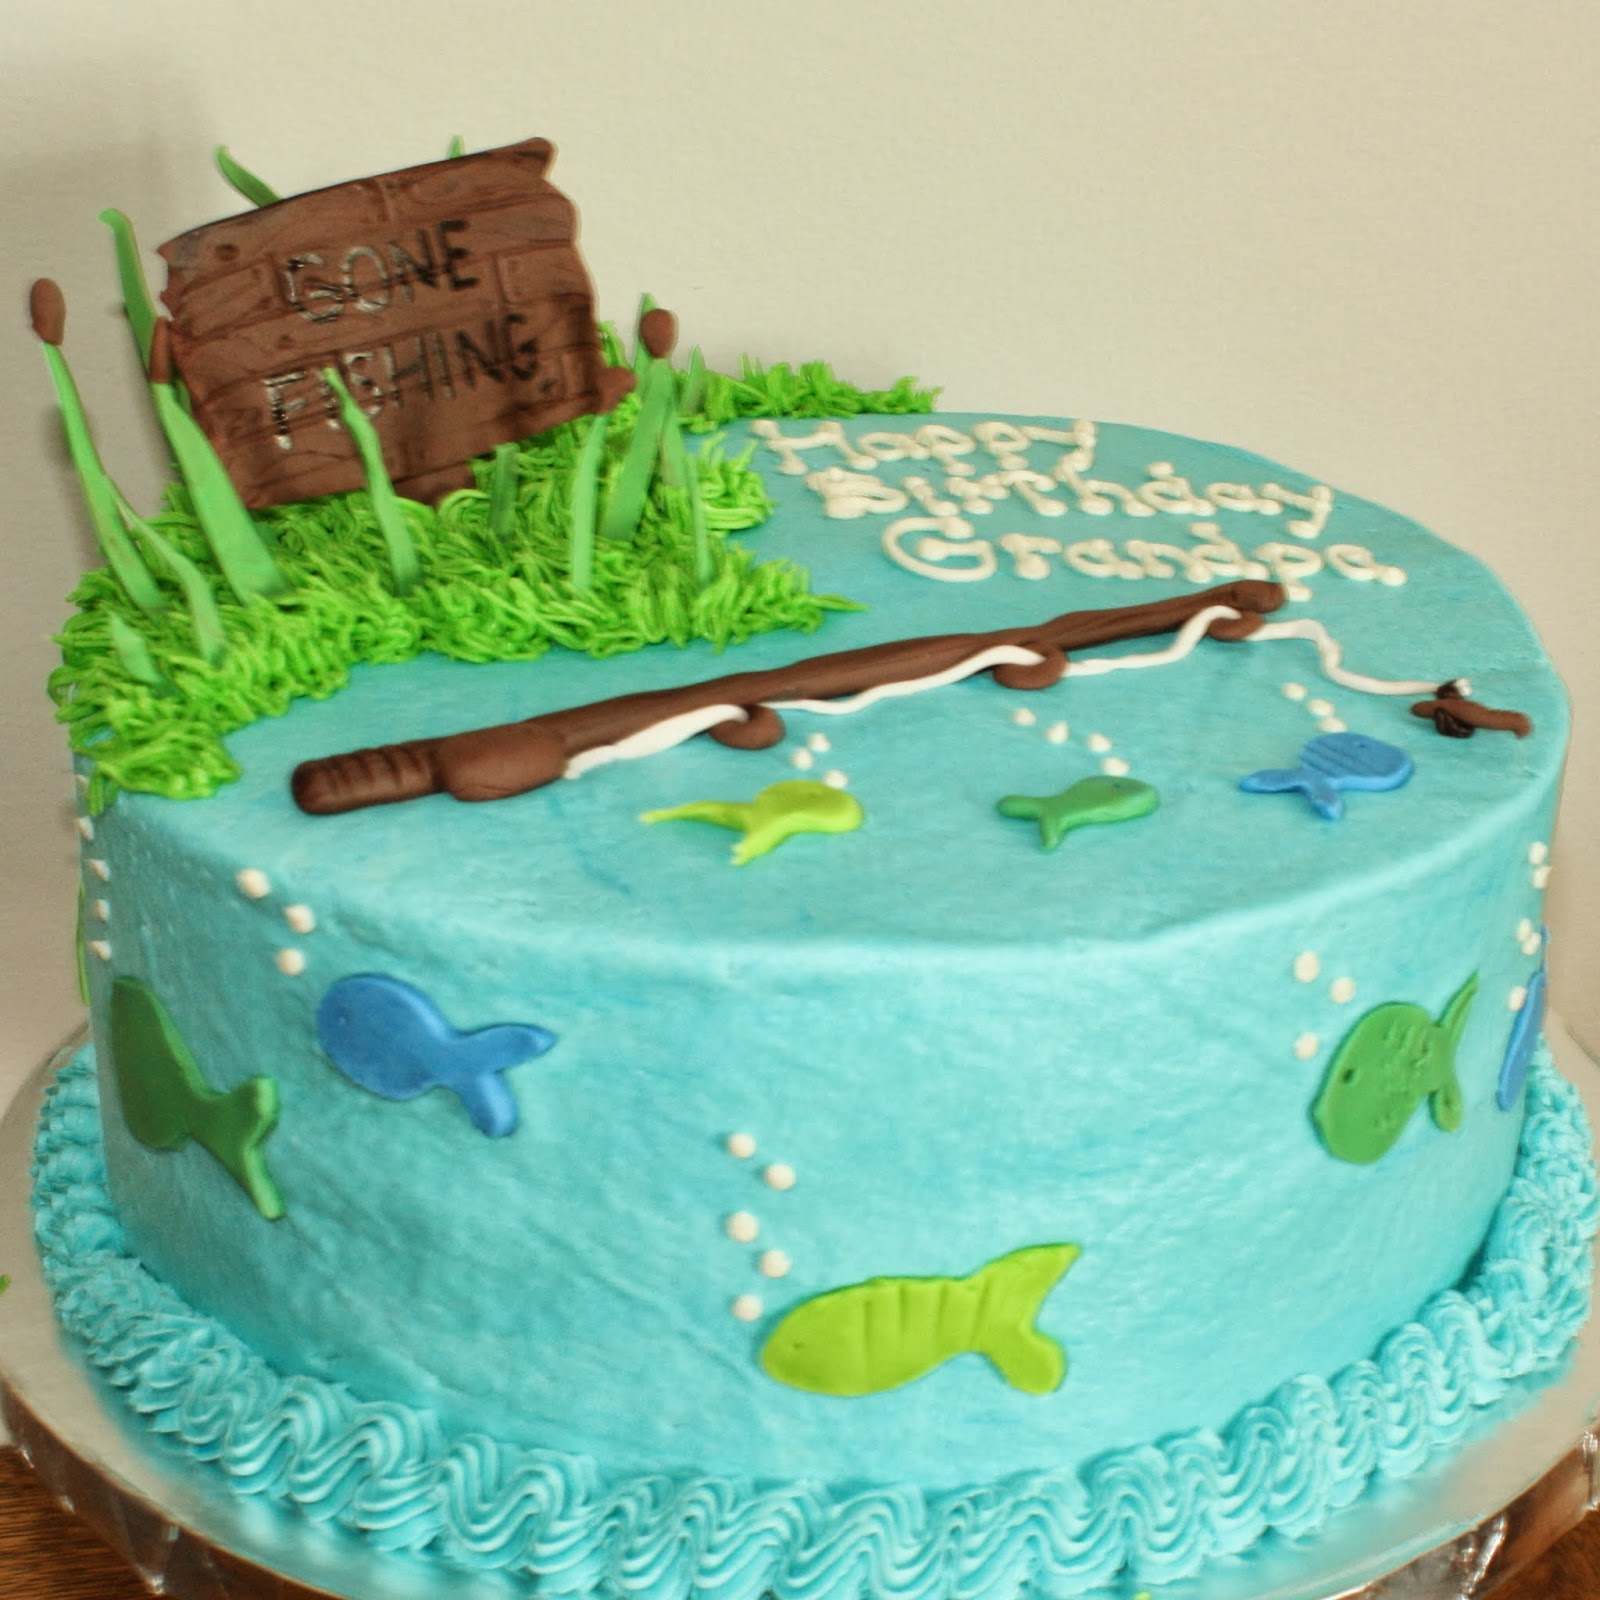 Kake gone fishing cake for Fishing themed cakes